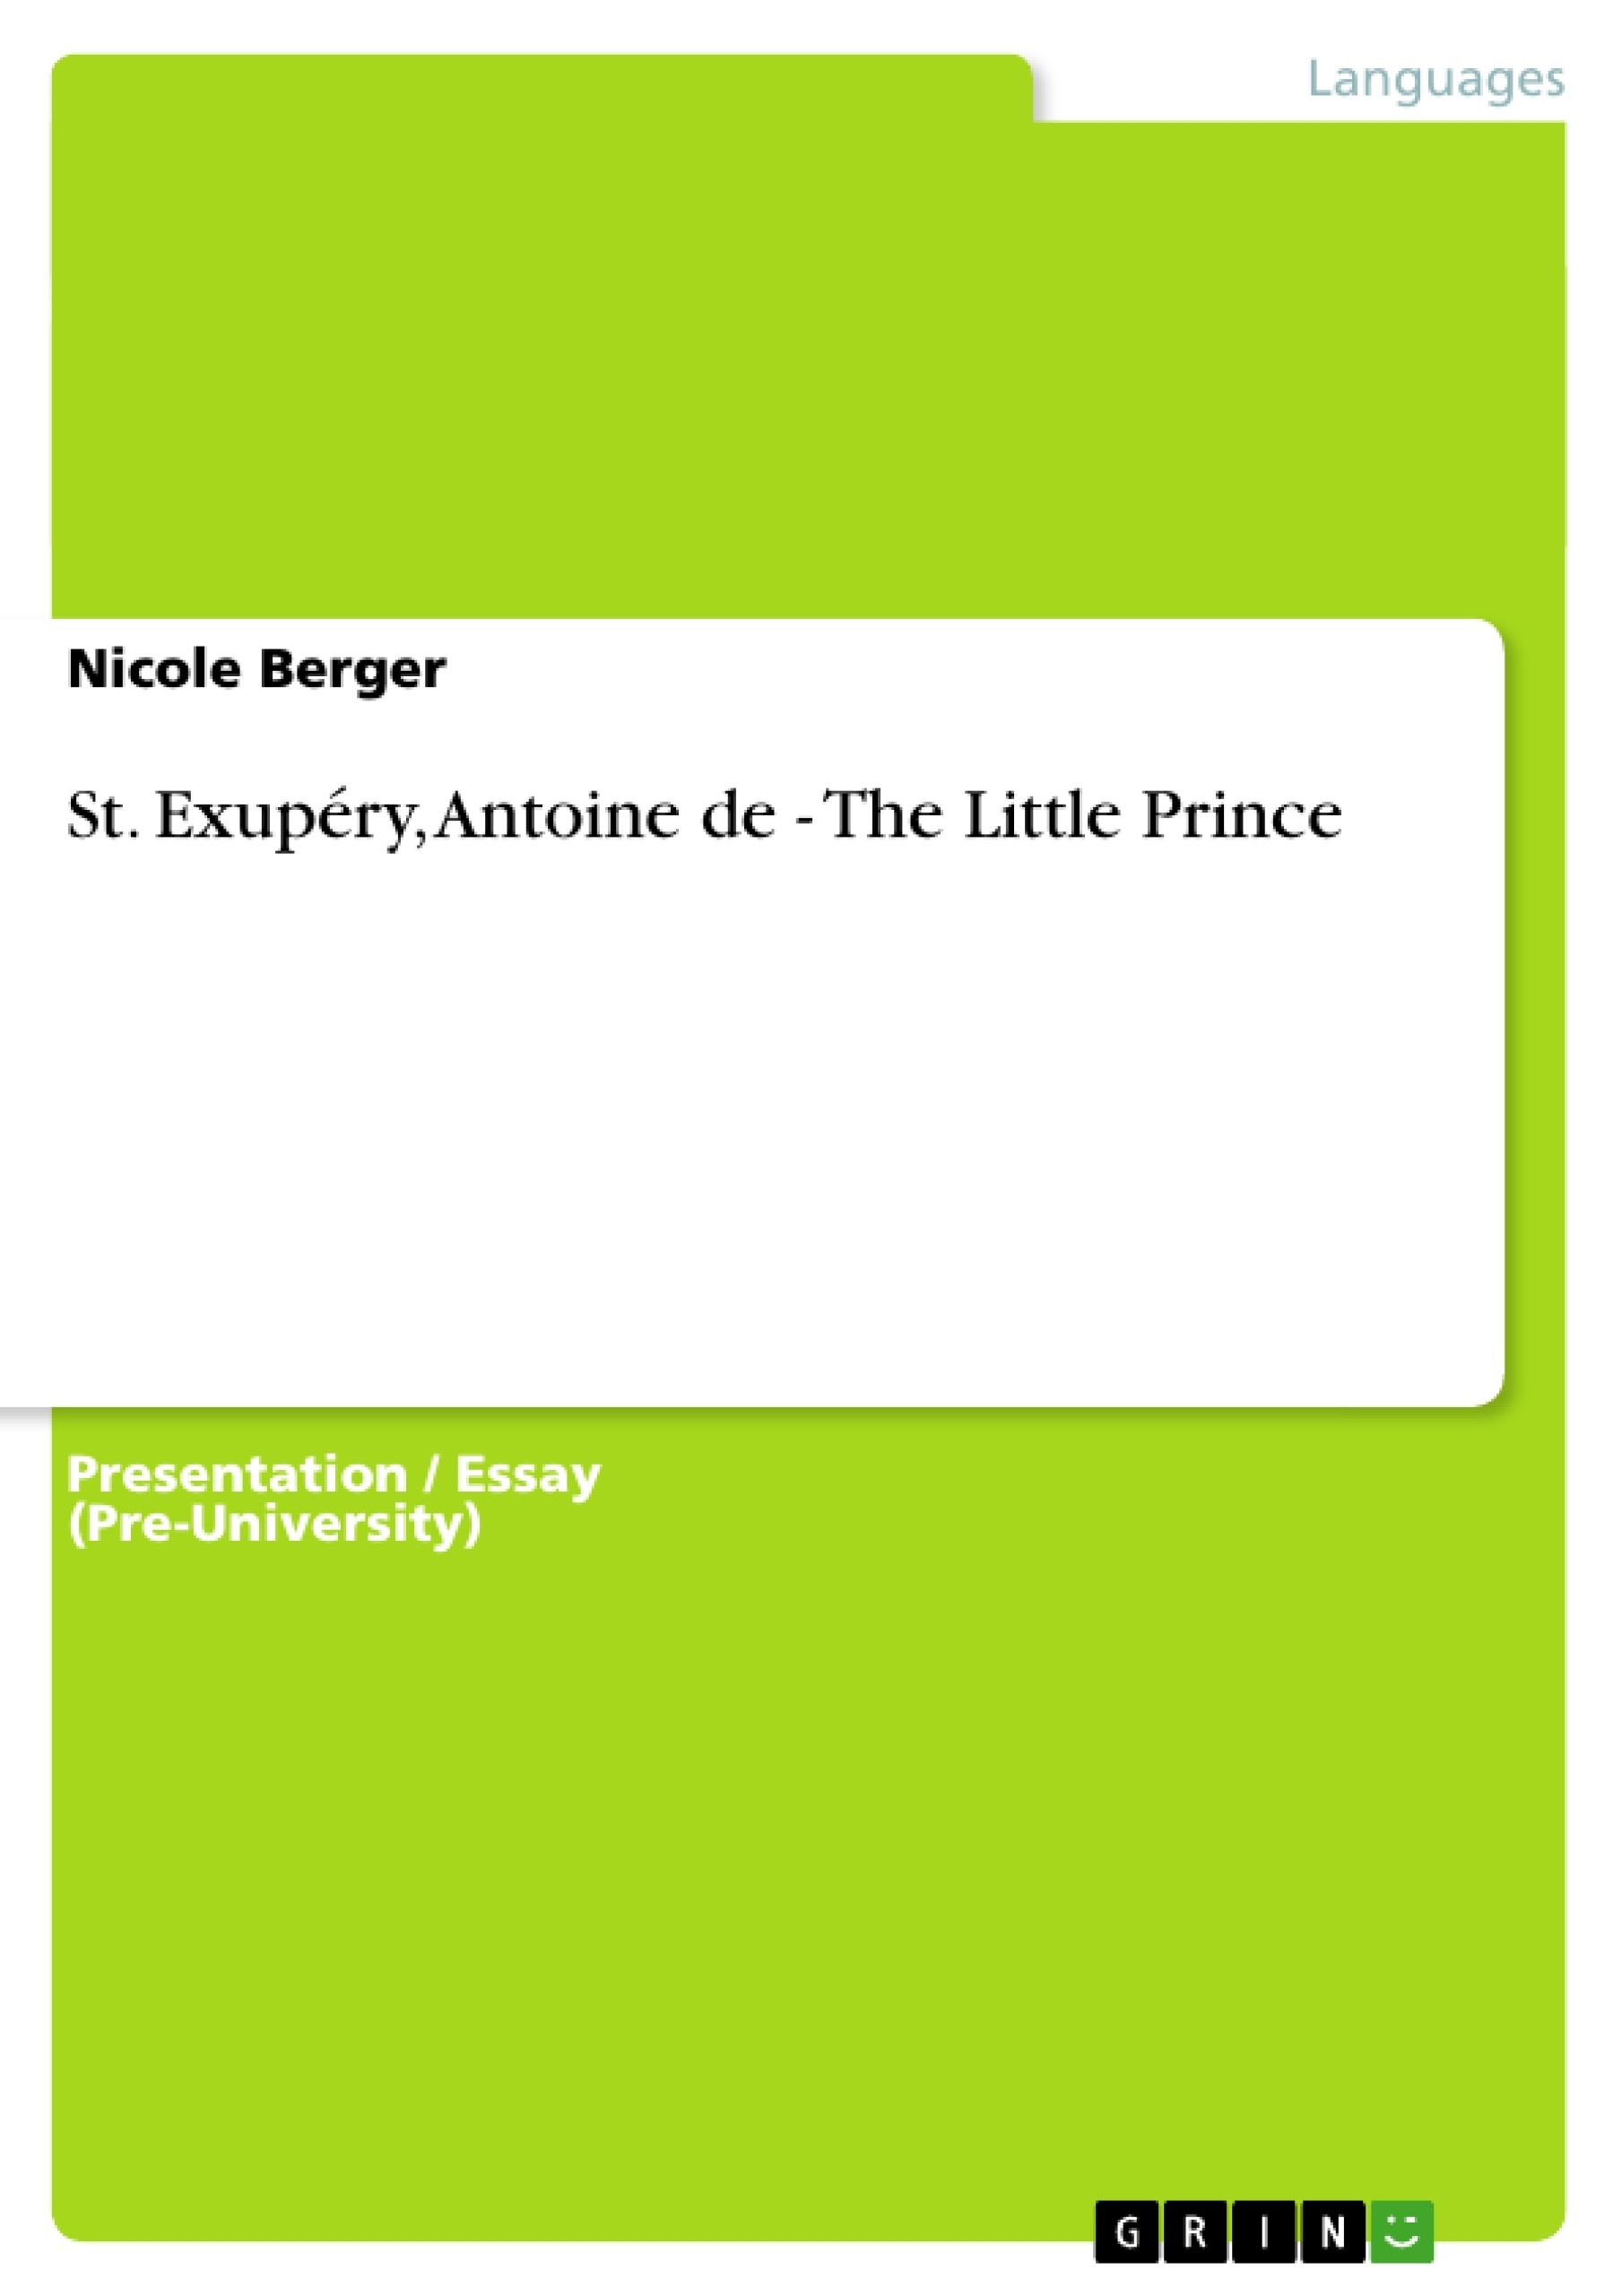 st exup eacute ry antoine de the little prince publish your st exupeacutery antoine de the little prince publish your master s thesis bachelor s thesis essay or term paper